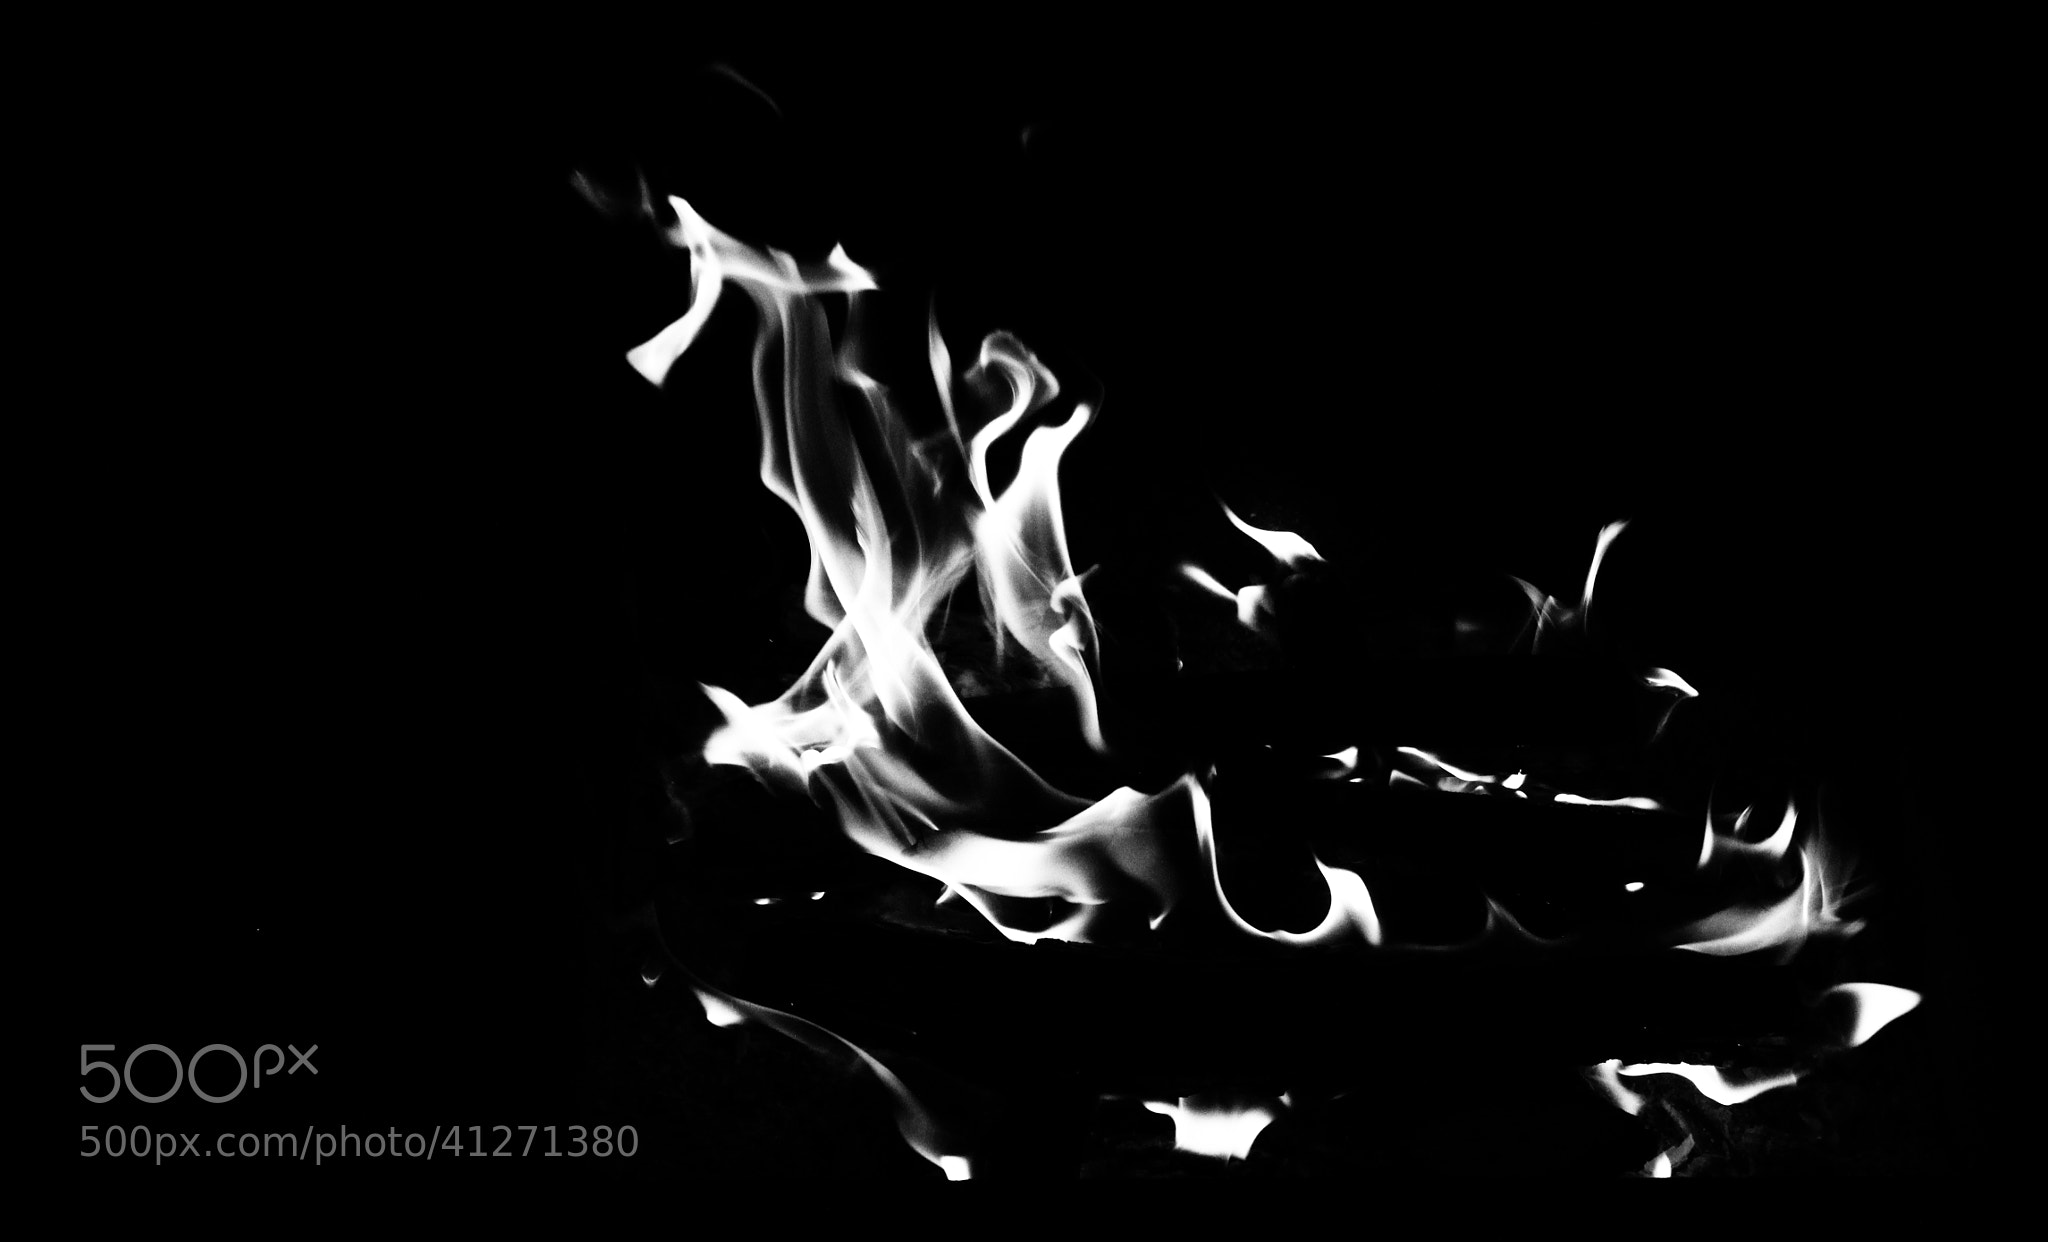 Photograph Silver Flames by Mihai Adam on 500px